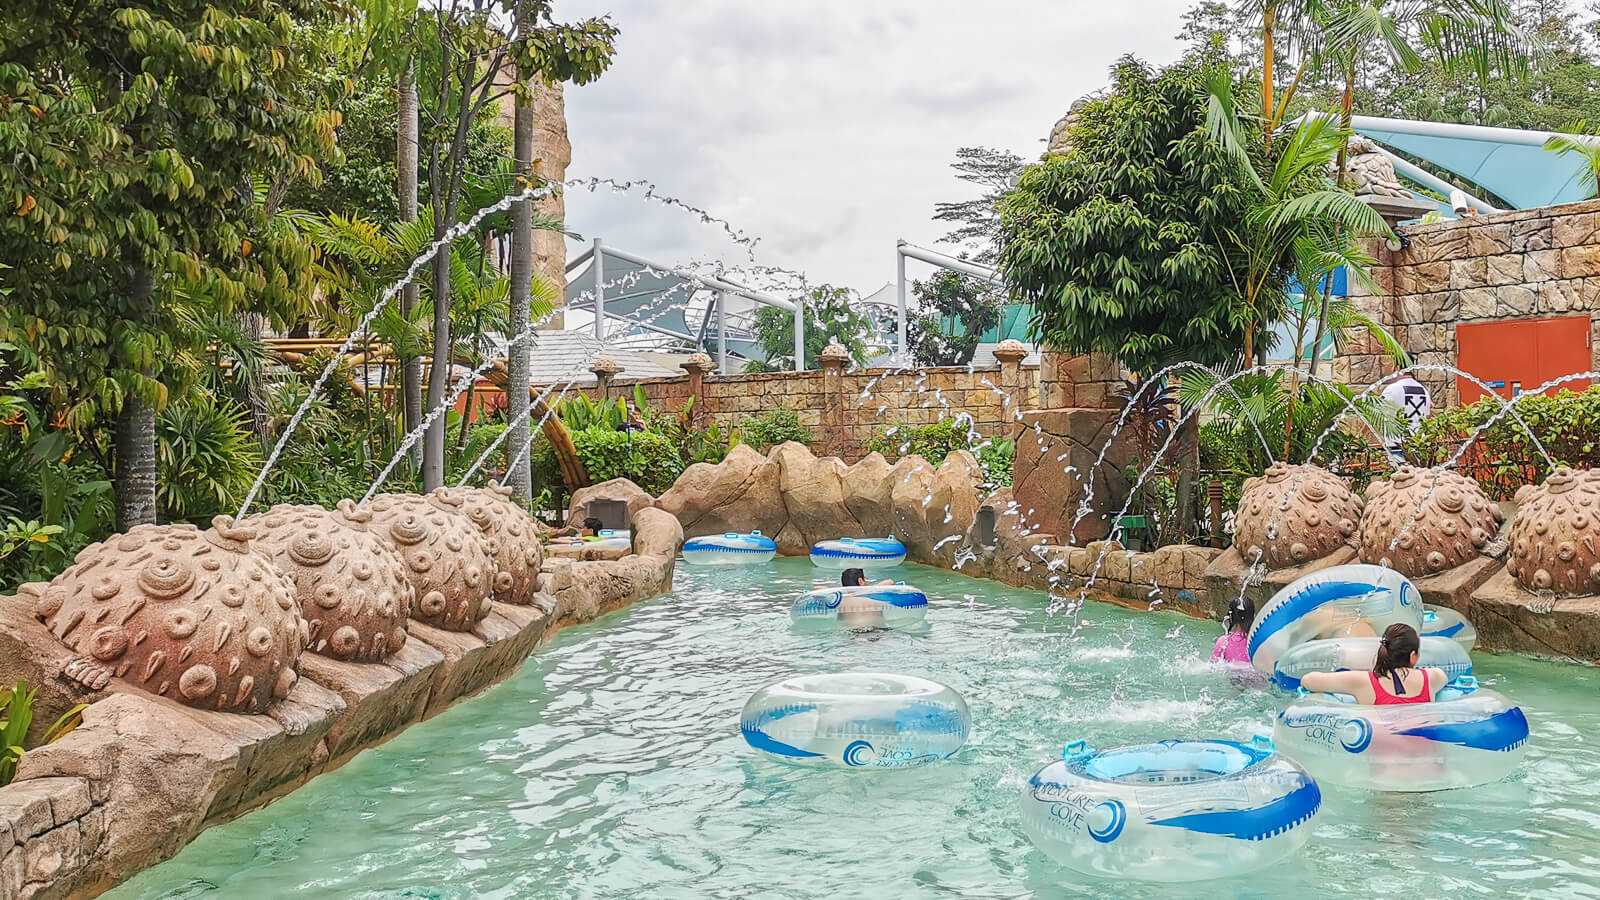 Have a wet and wild escapade at Adventure Cove Waterpark